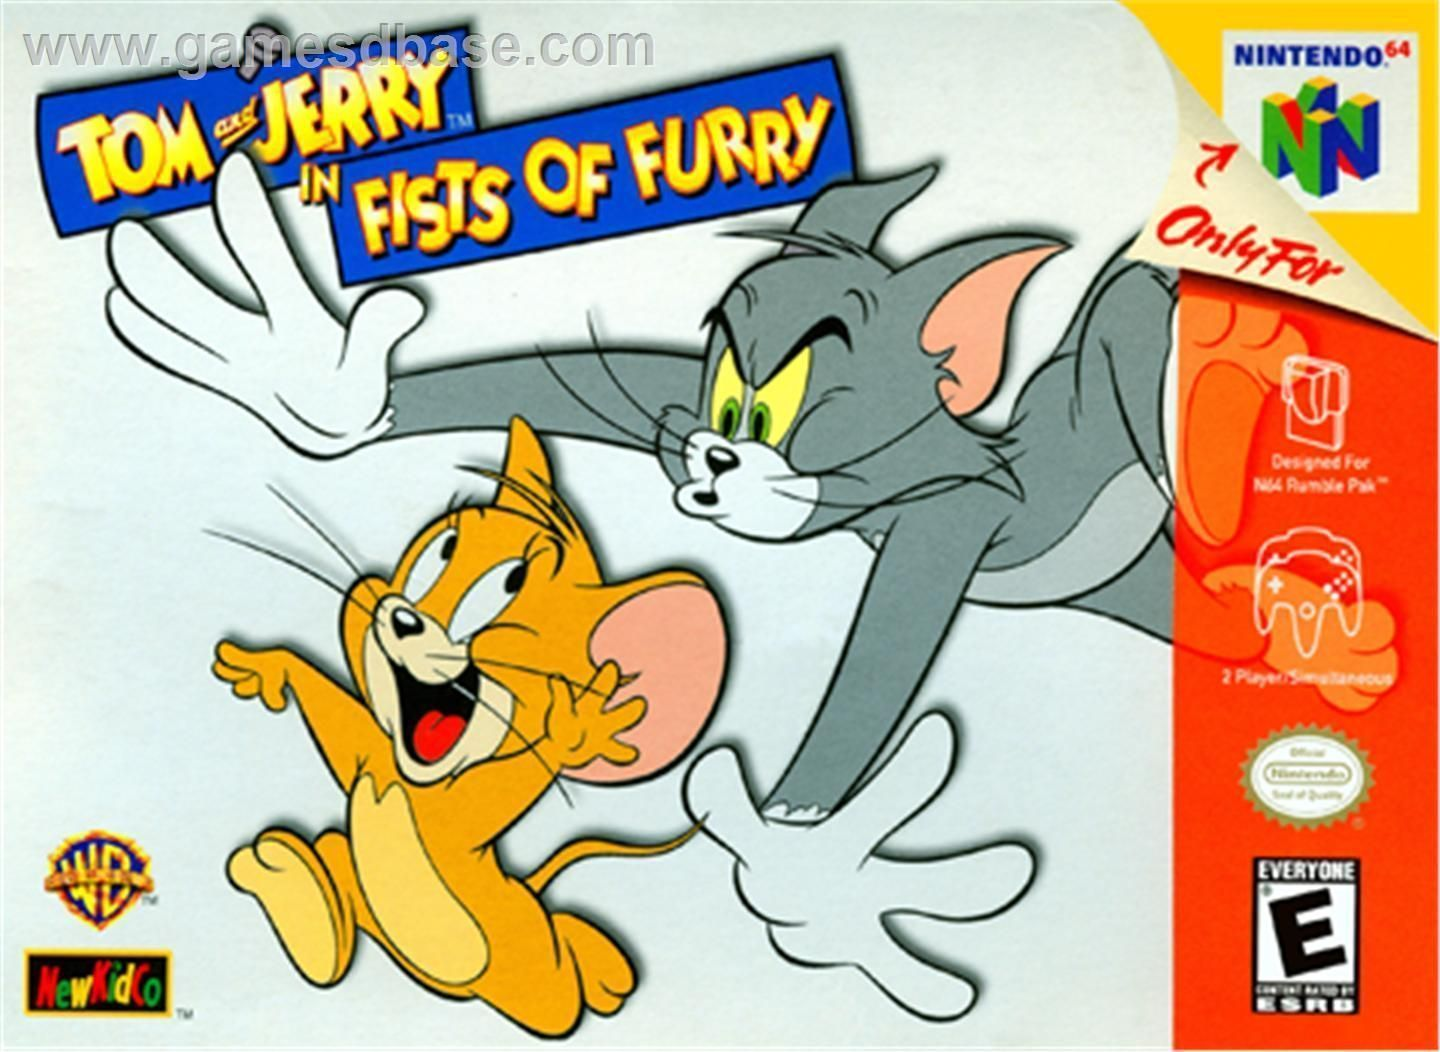 Tom jerry porn